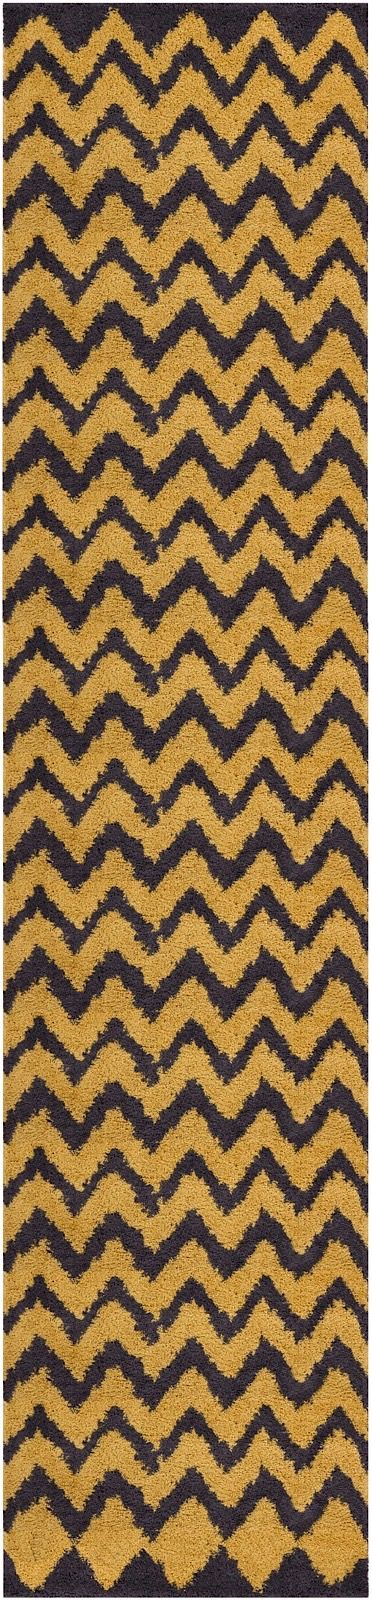 well woven madison shag passion chevron shag area rug collection